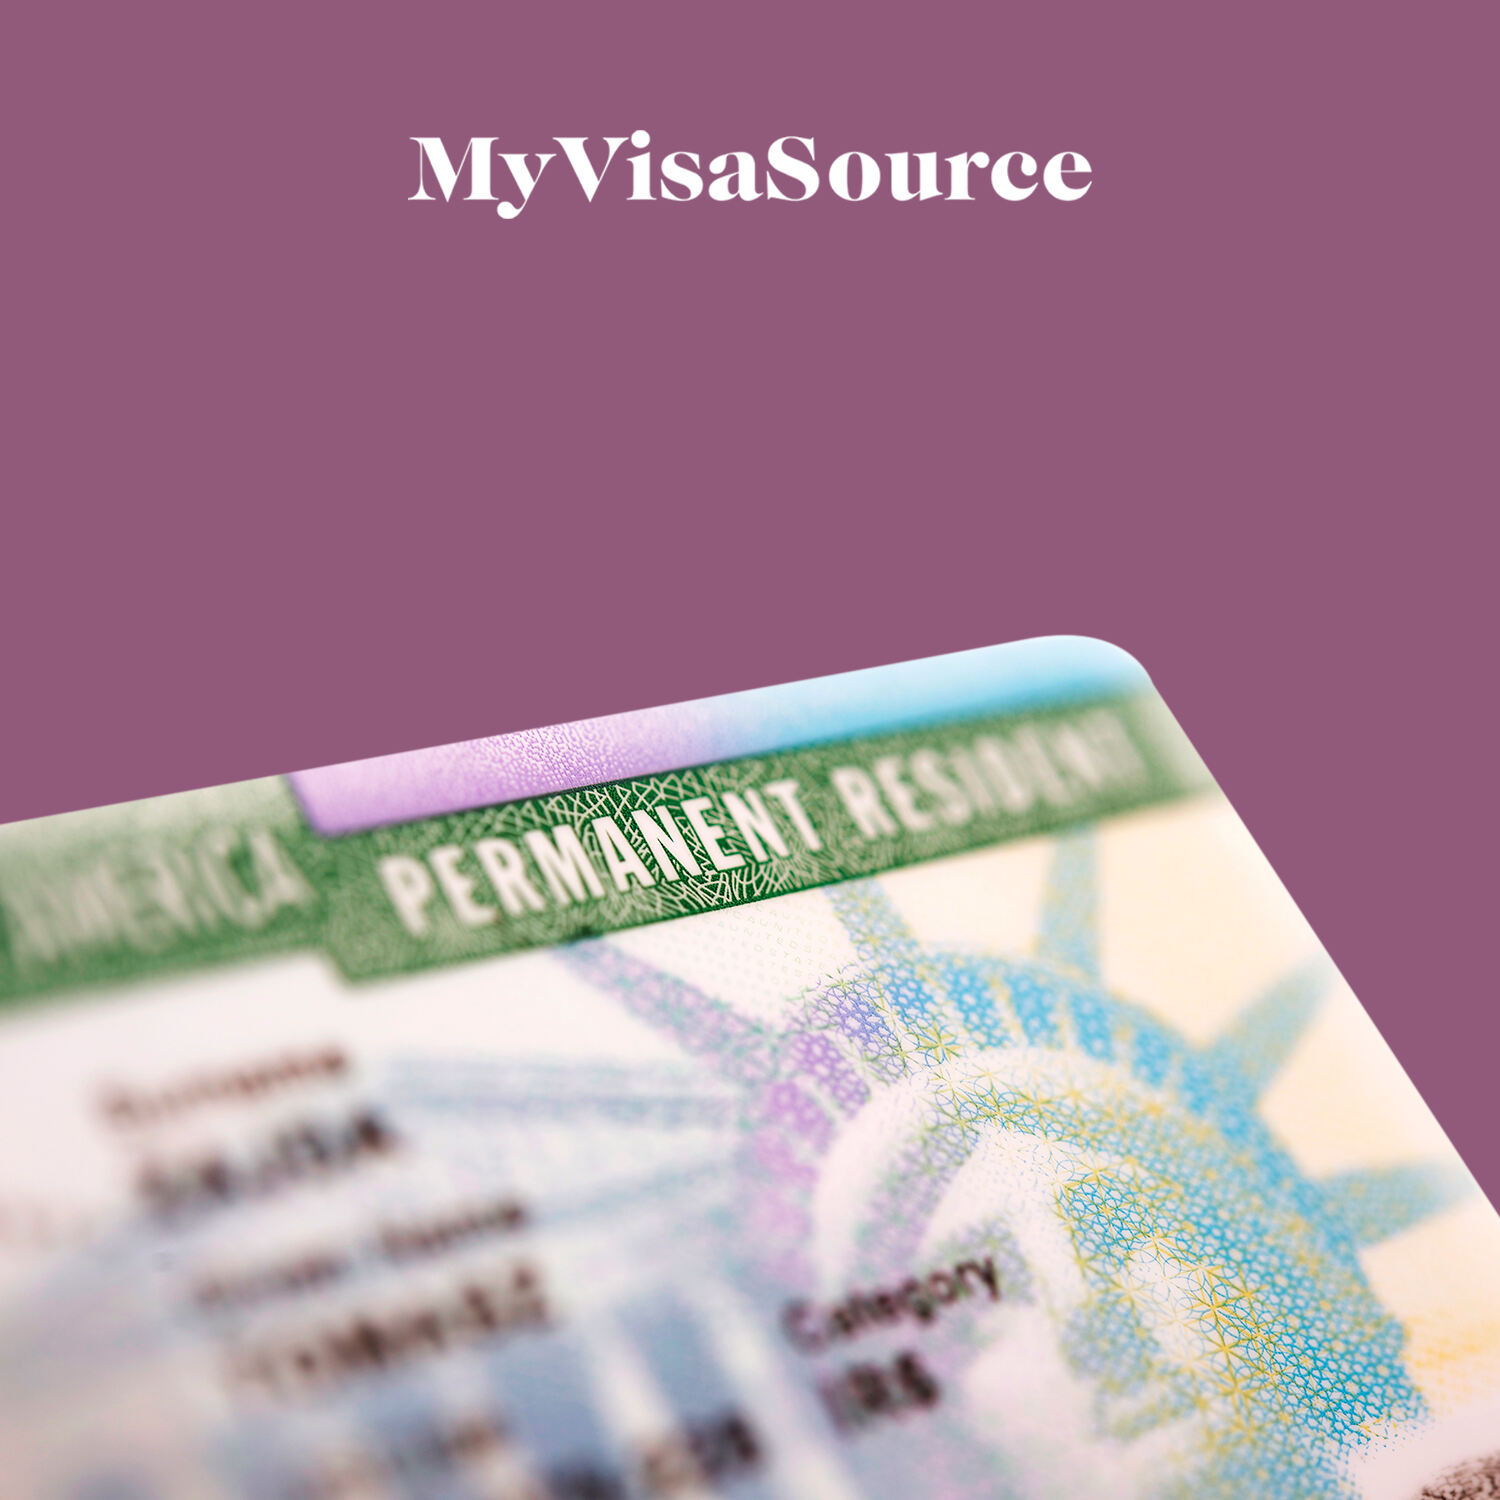 us permanent resident green card